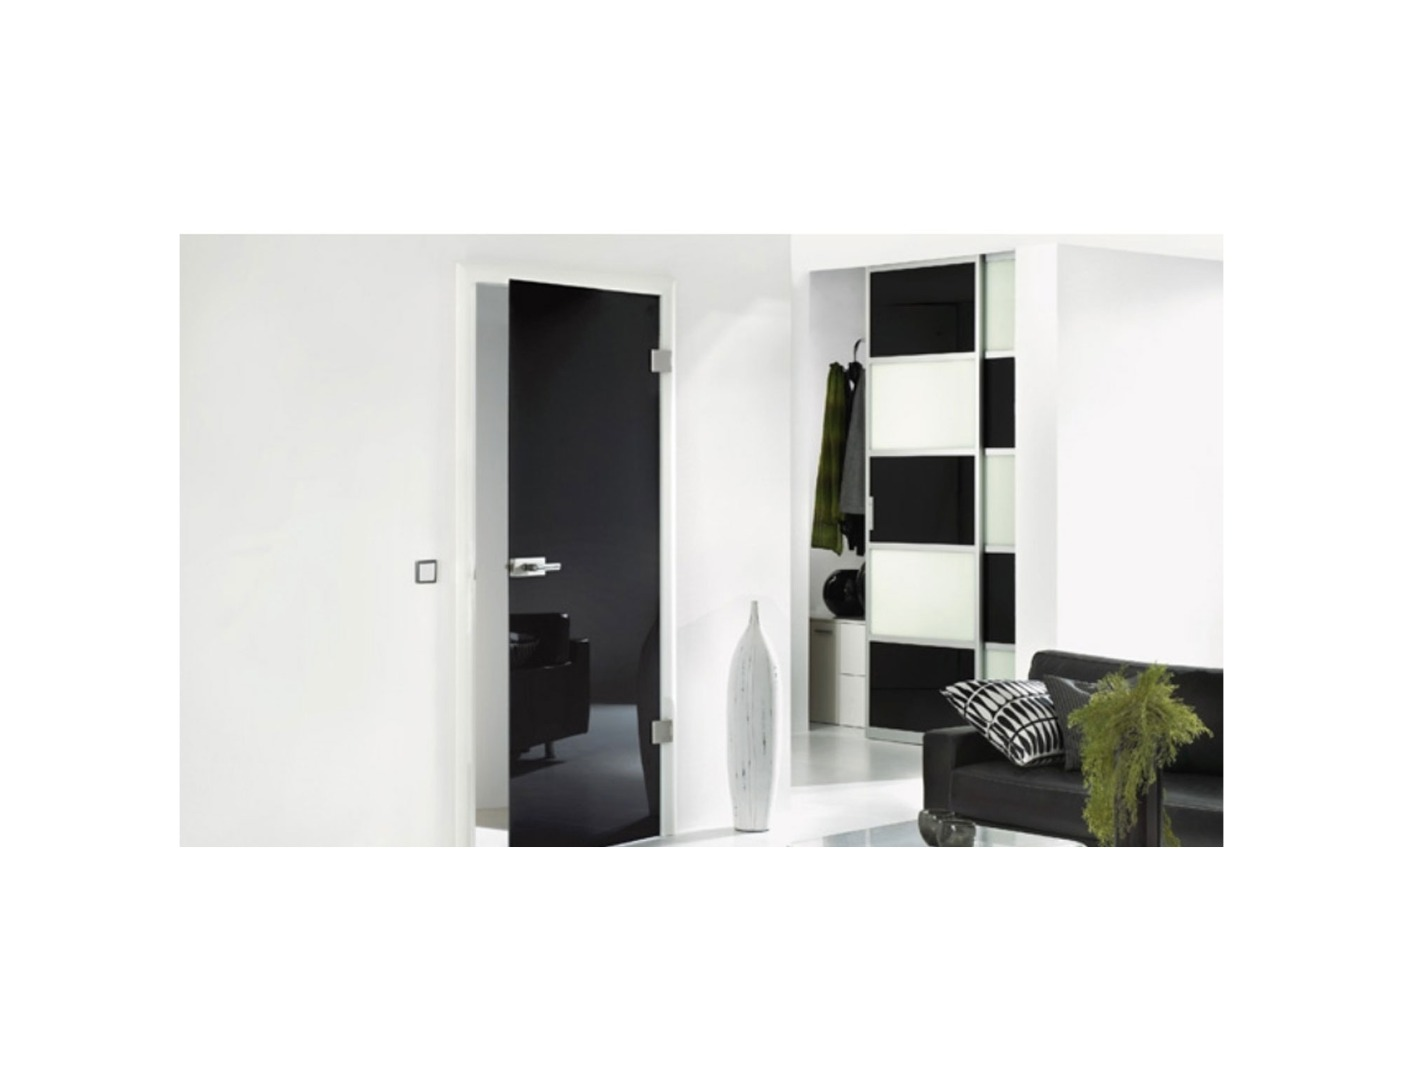 Black Laminate Glass Doors - Bespoke Black Glass Doors With Mirror Effect